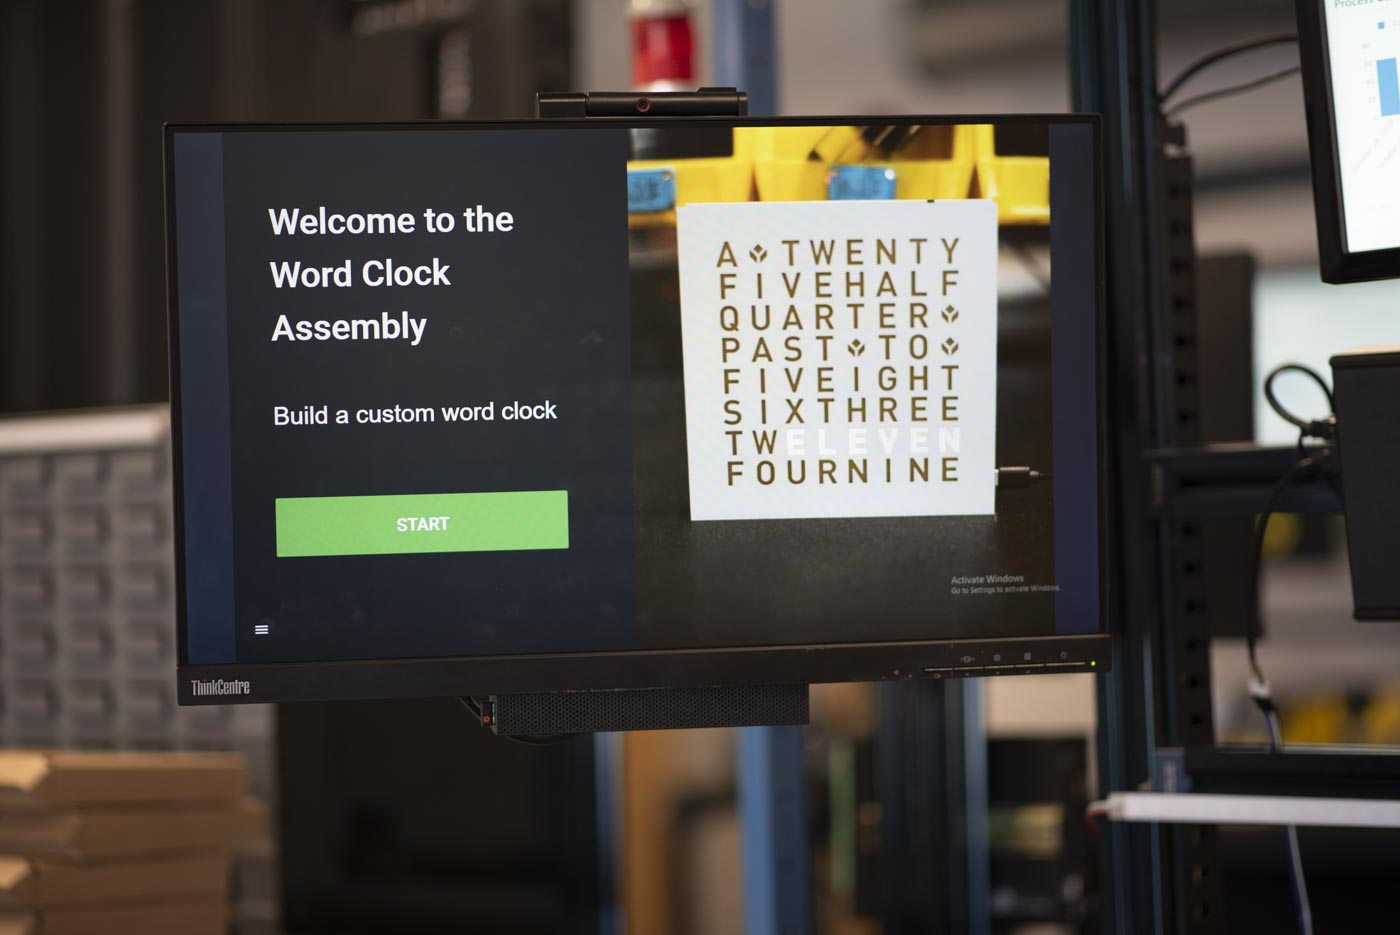 word clock assembly app running on an assembly station bench